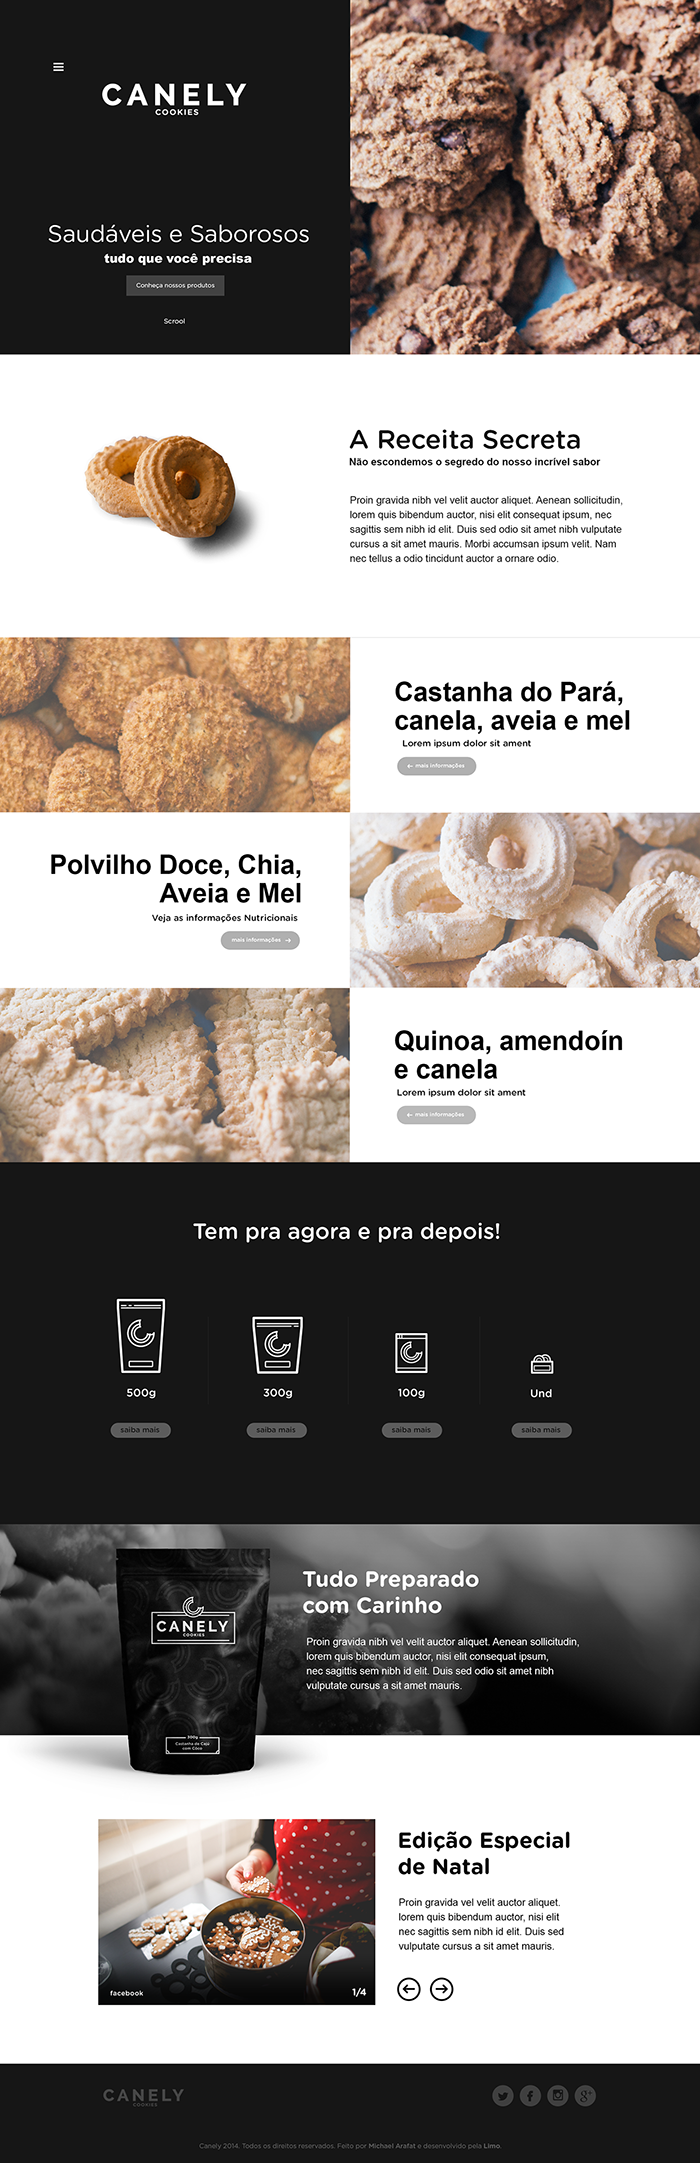 Canely Cookies12